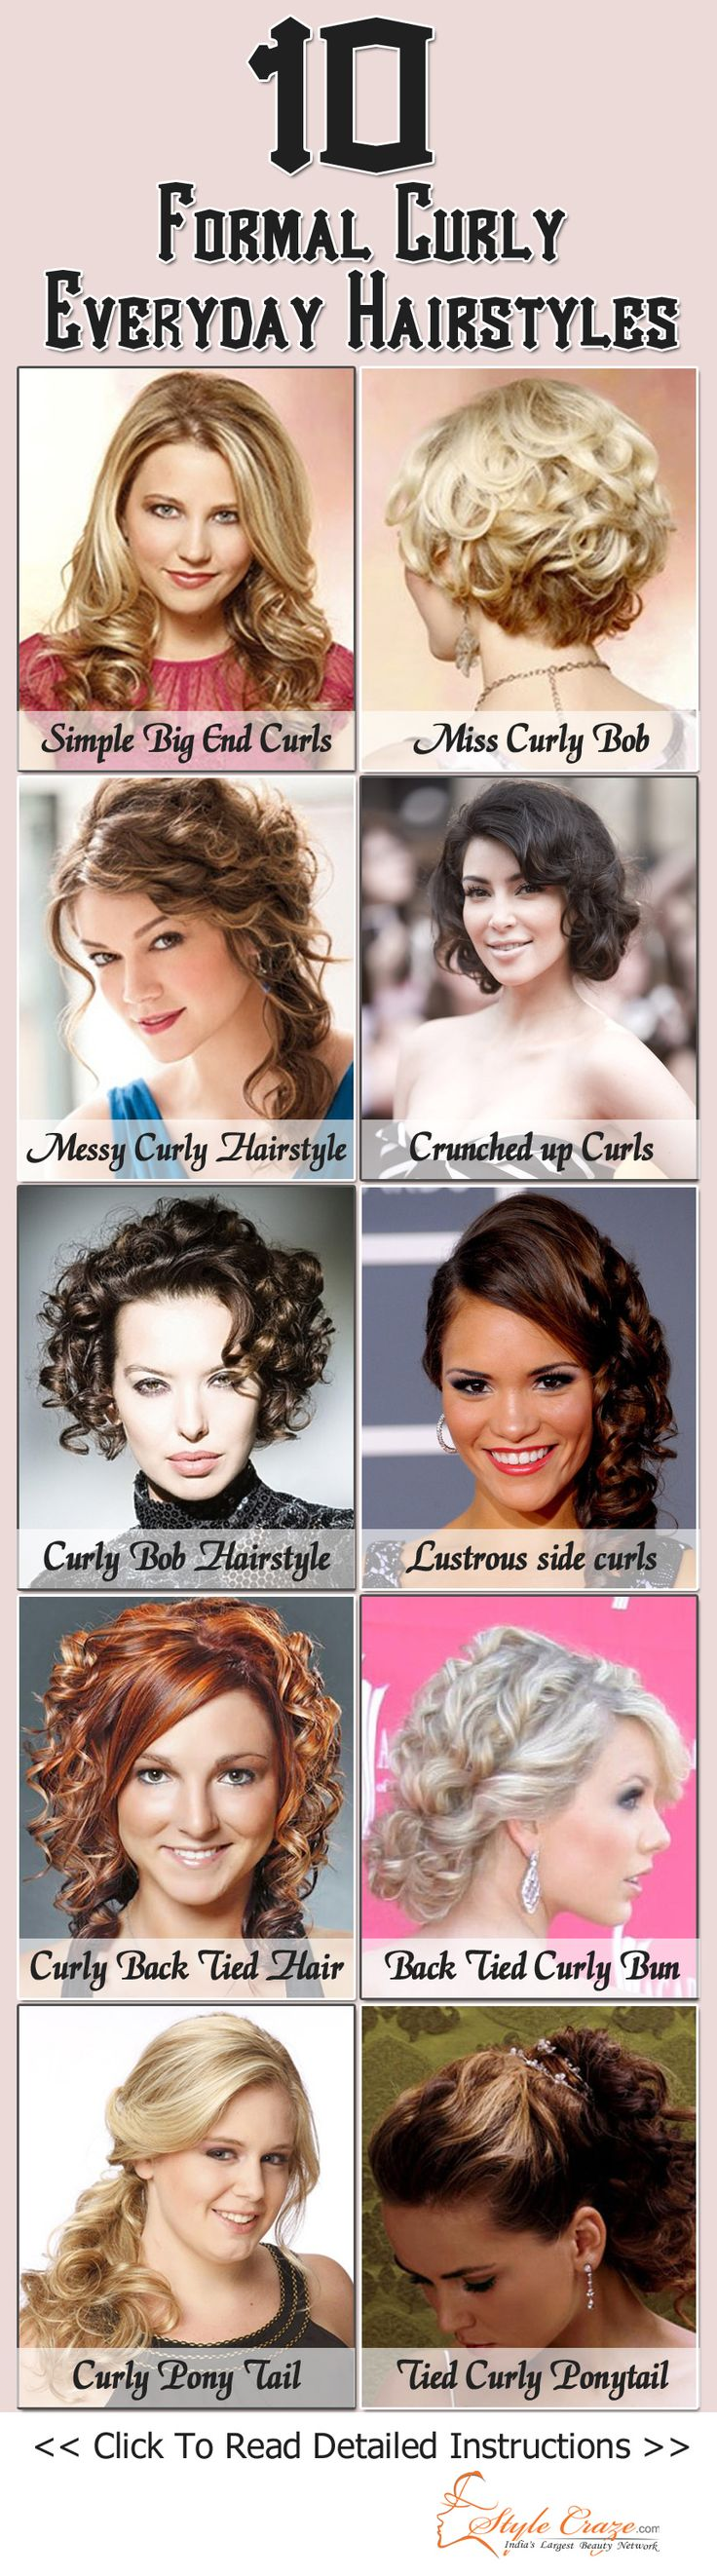 48 best curly hair!!! images on Pinterest